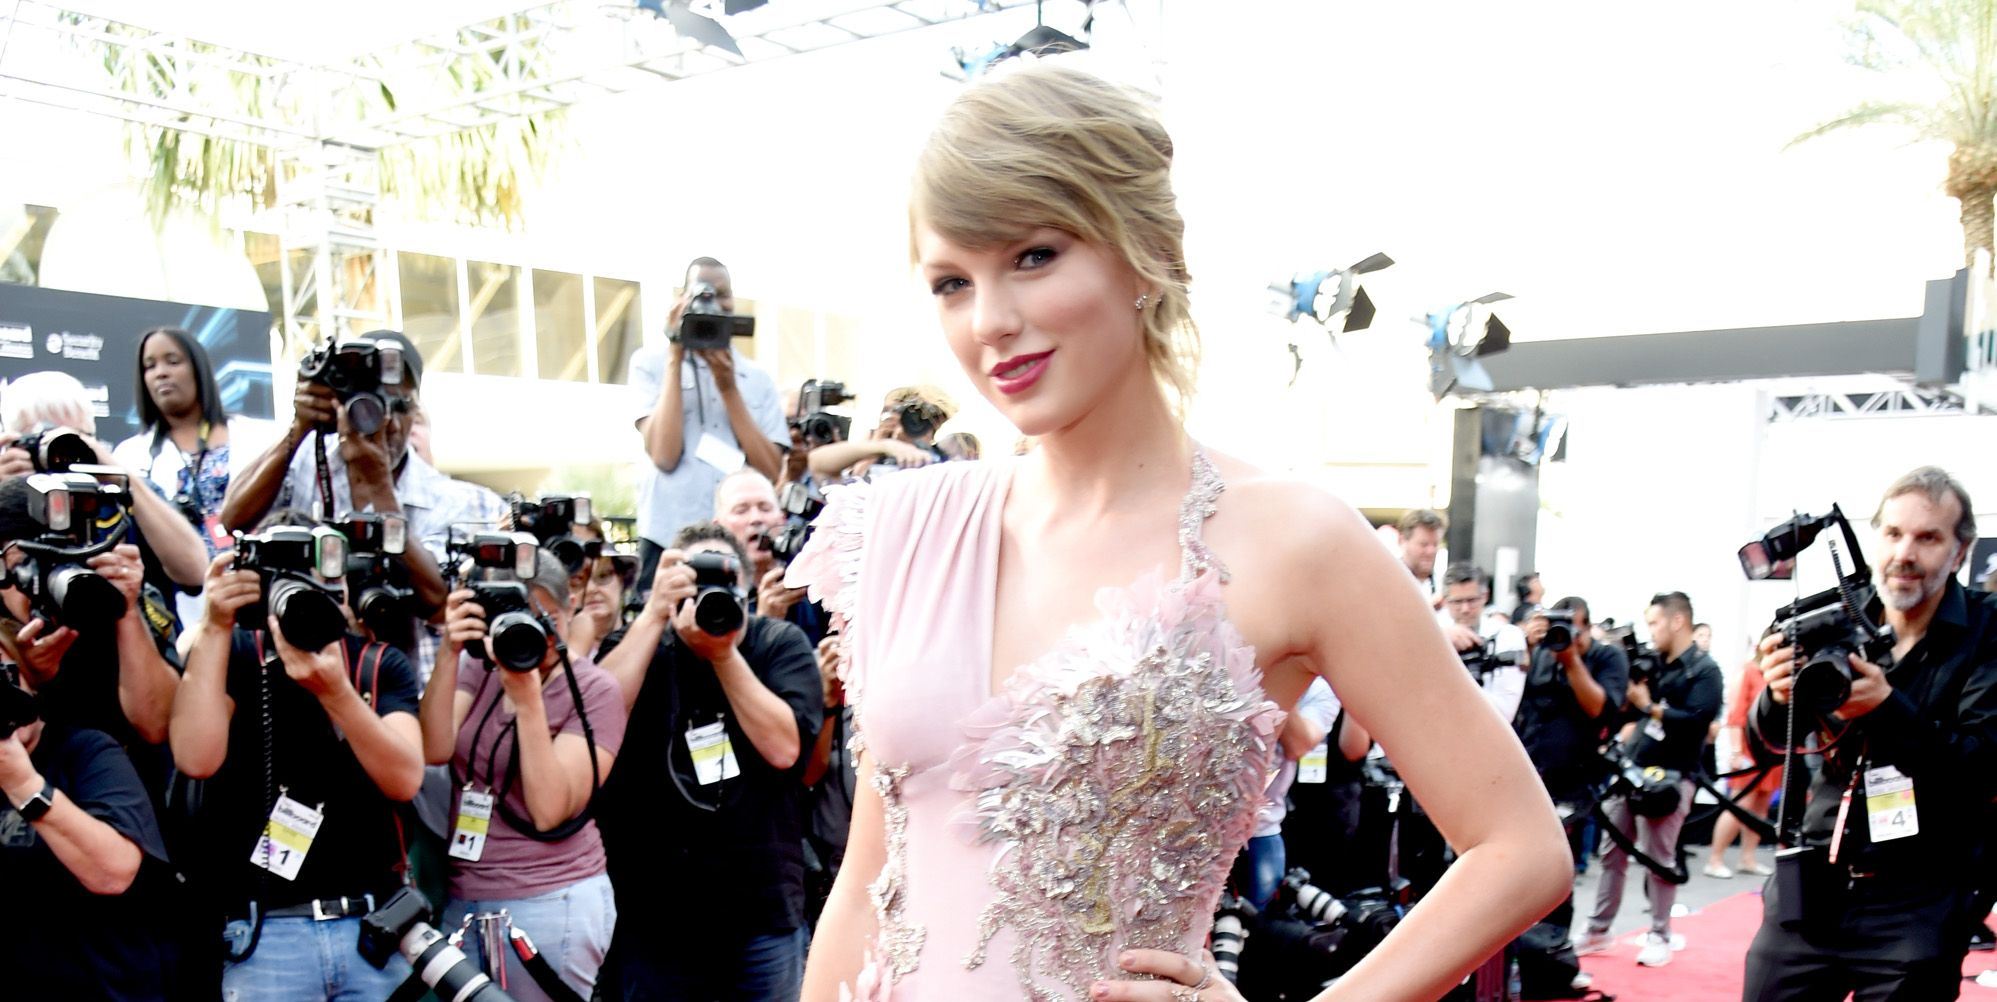 Taylor Swift Returns to the Billboard Music Awards for the First Time in Years